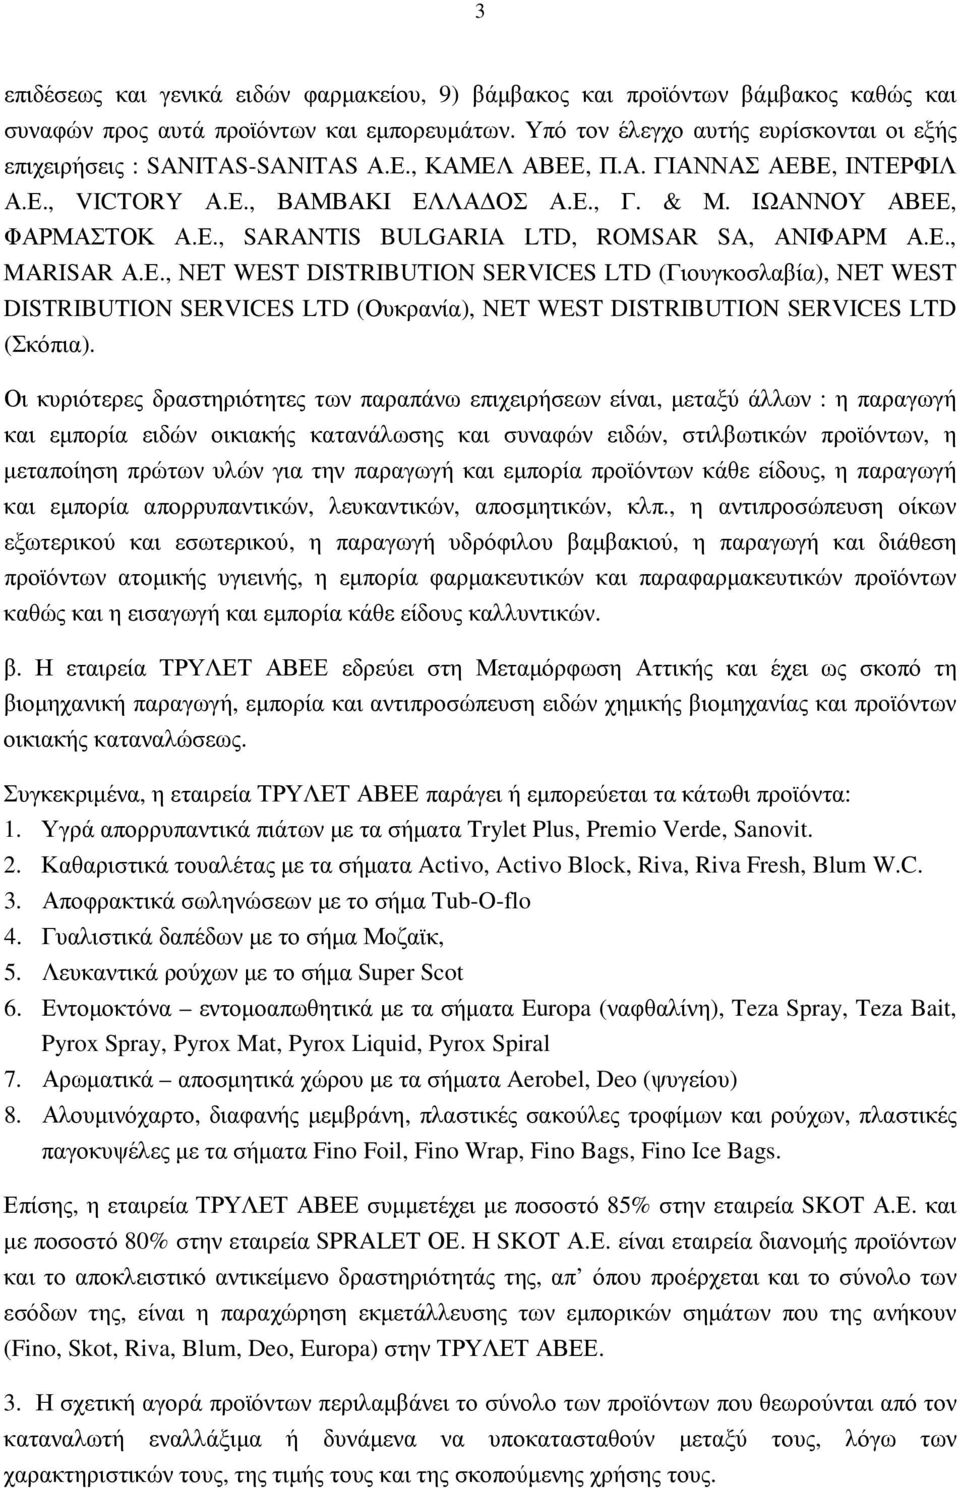 Ε., MARISAR Α.Ε., NET WEST DISTRIBUTION SERVICES LTD (Γιουγκοσλαβία), NET WEST DISTRIBUTION SERVICES LTD (Ουκρανία), NET WEST DISTRIBUTION SERVICES LTD (Σκόπια).